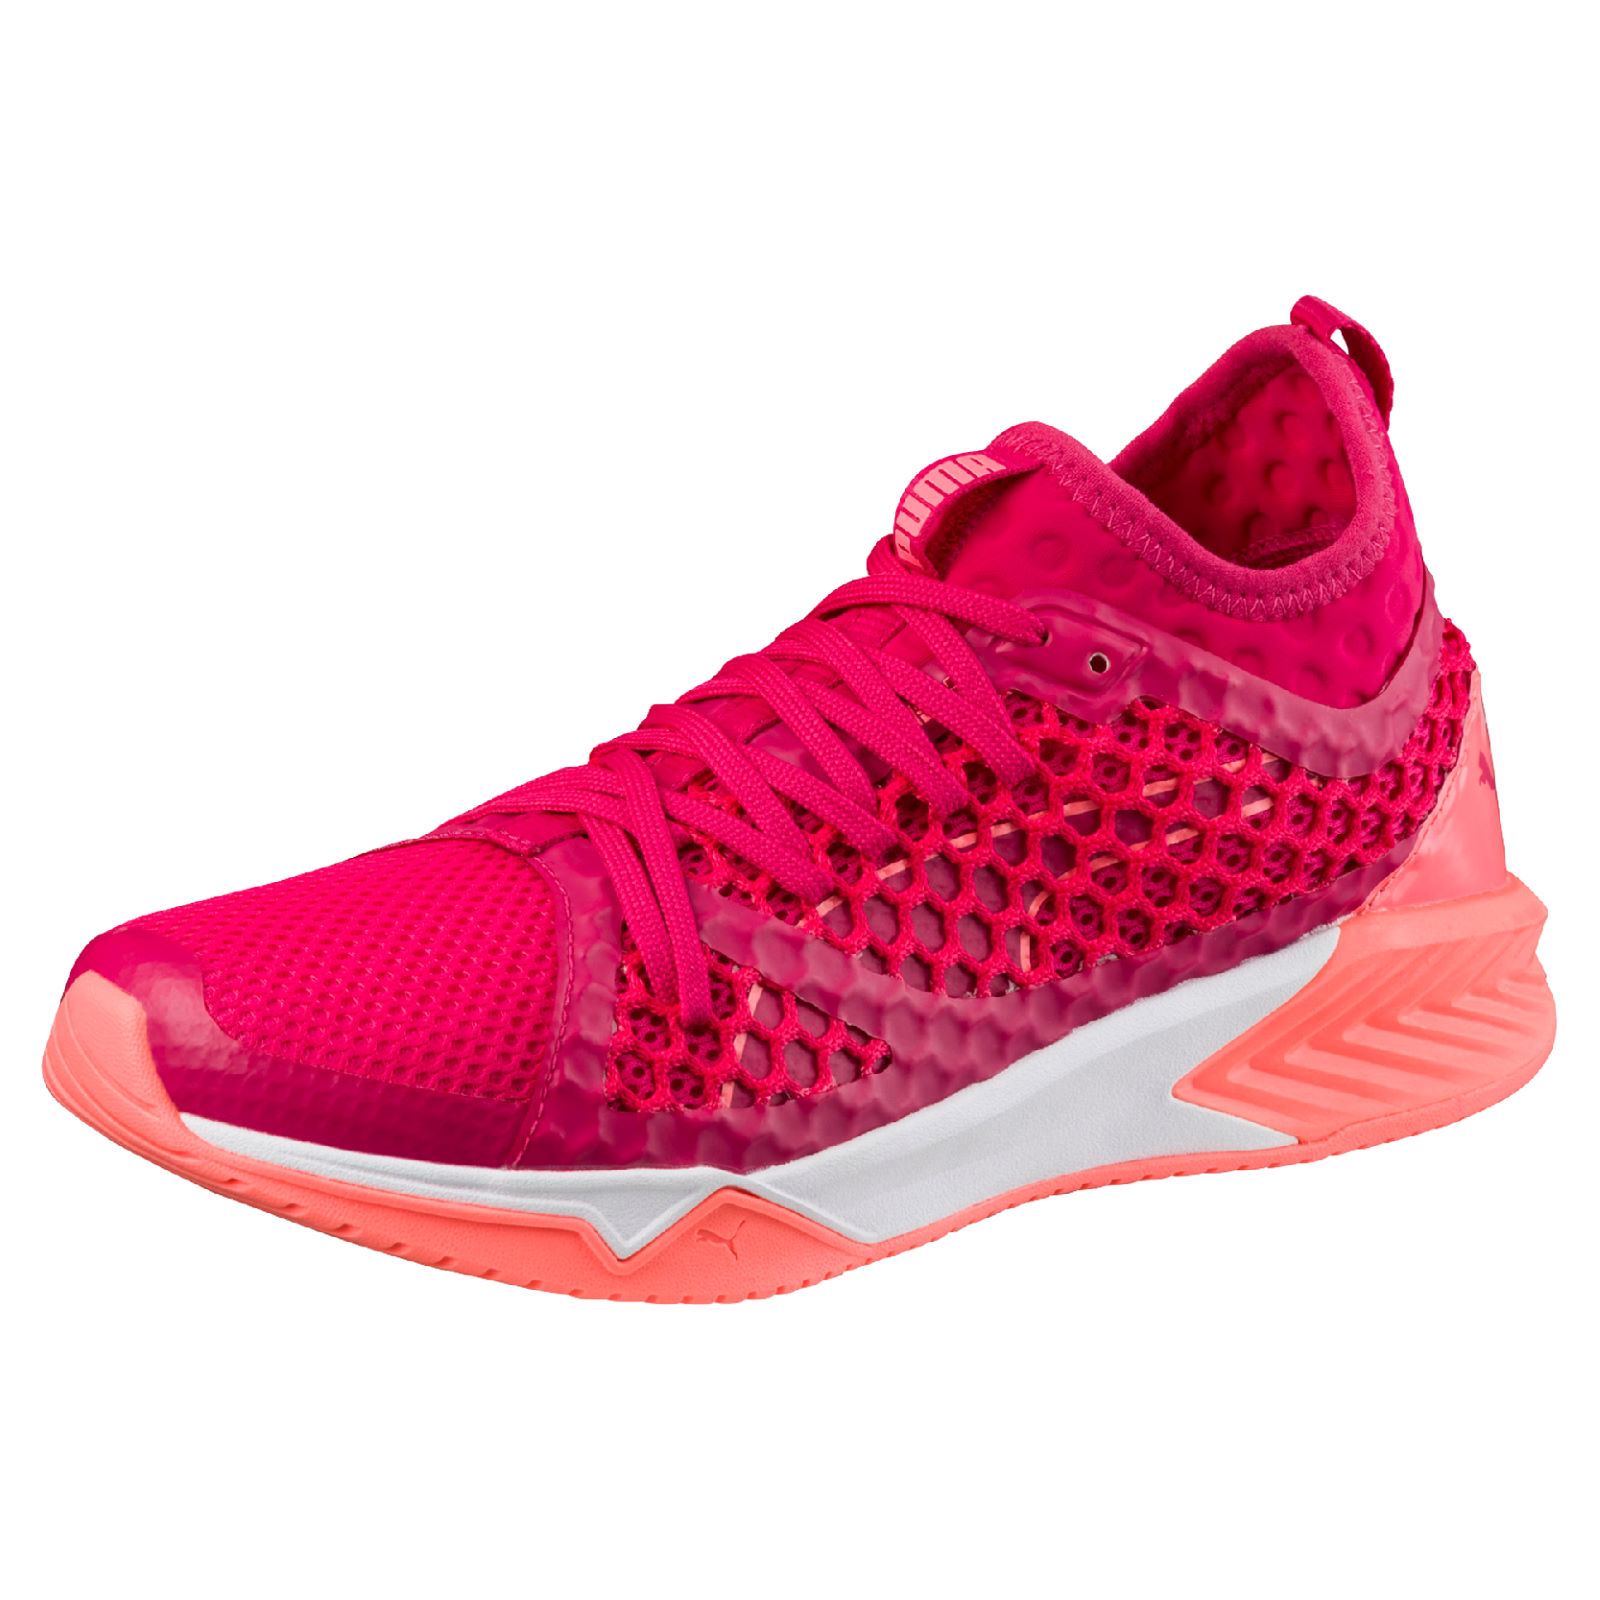 Black Friday Deals On Running Shoes